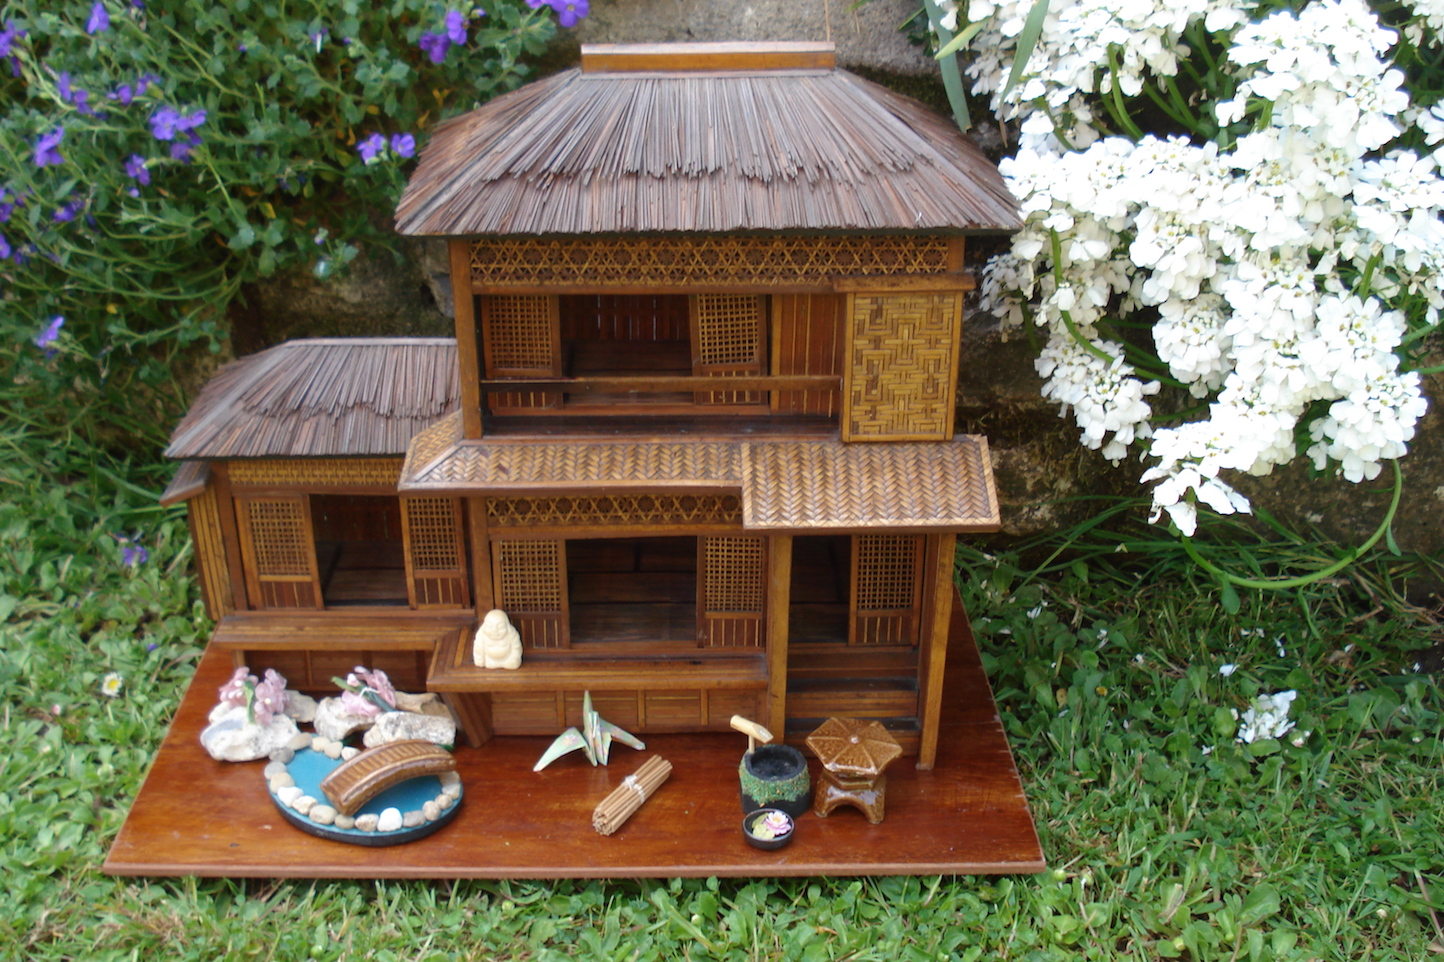 A small japanese house by jill friendship dolls houses past present